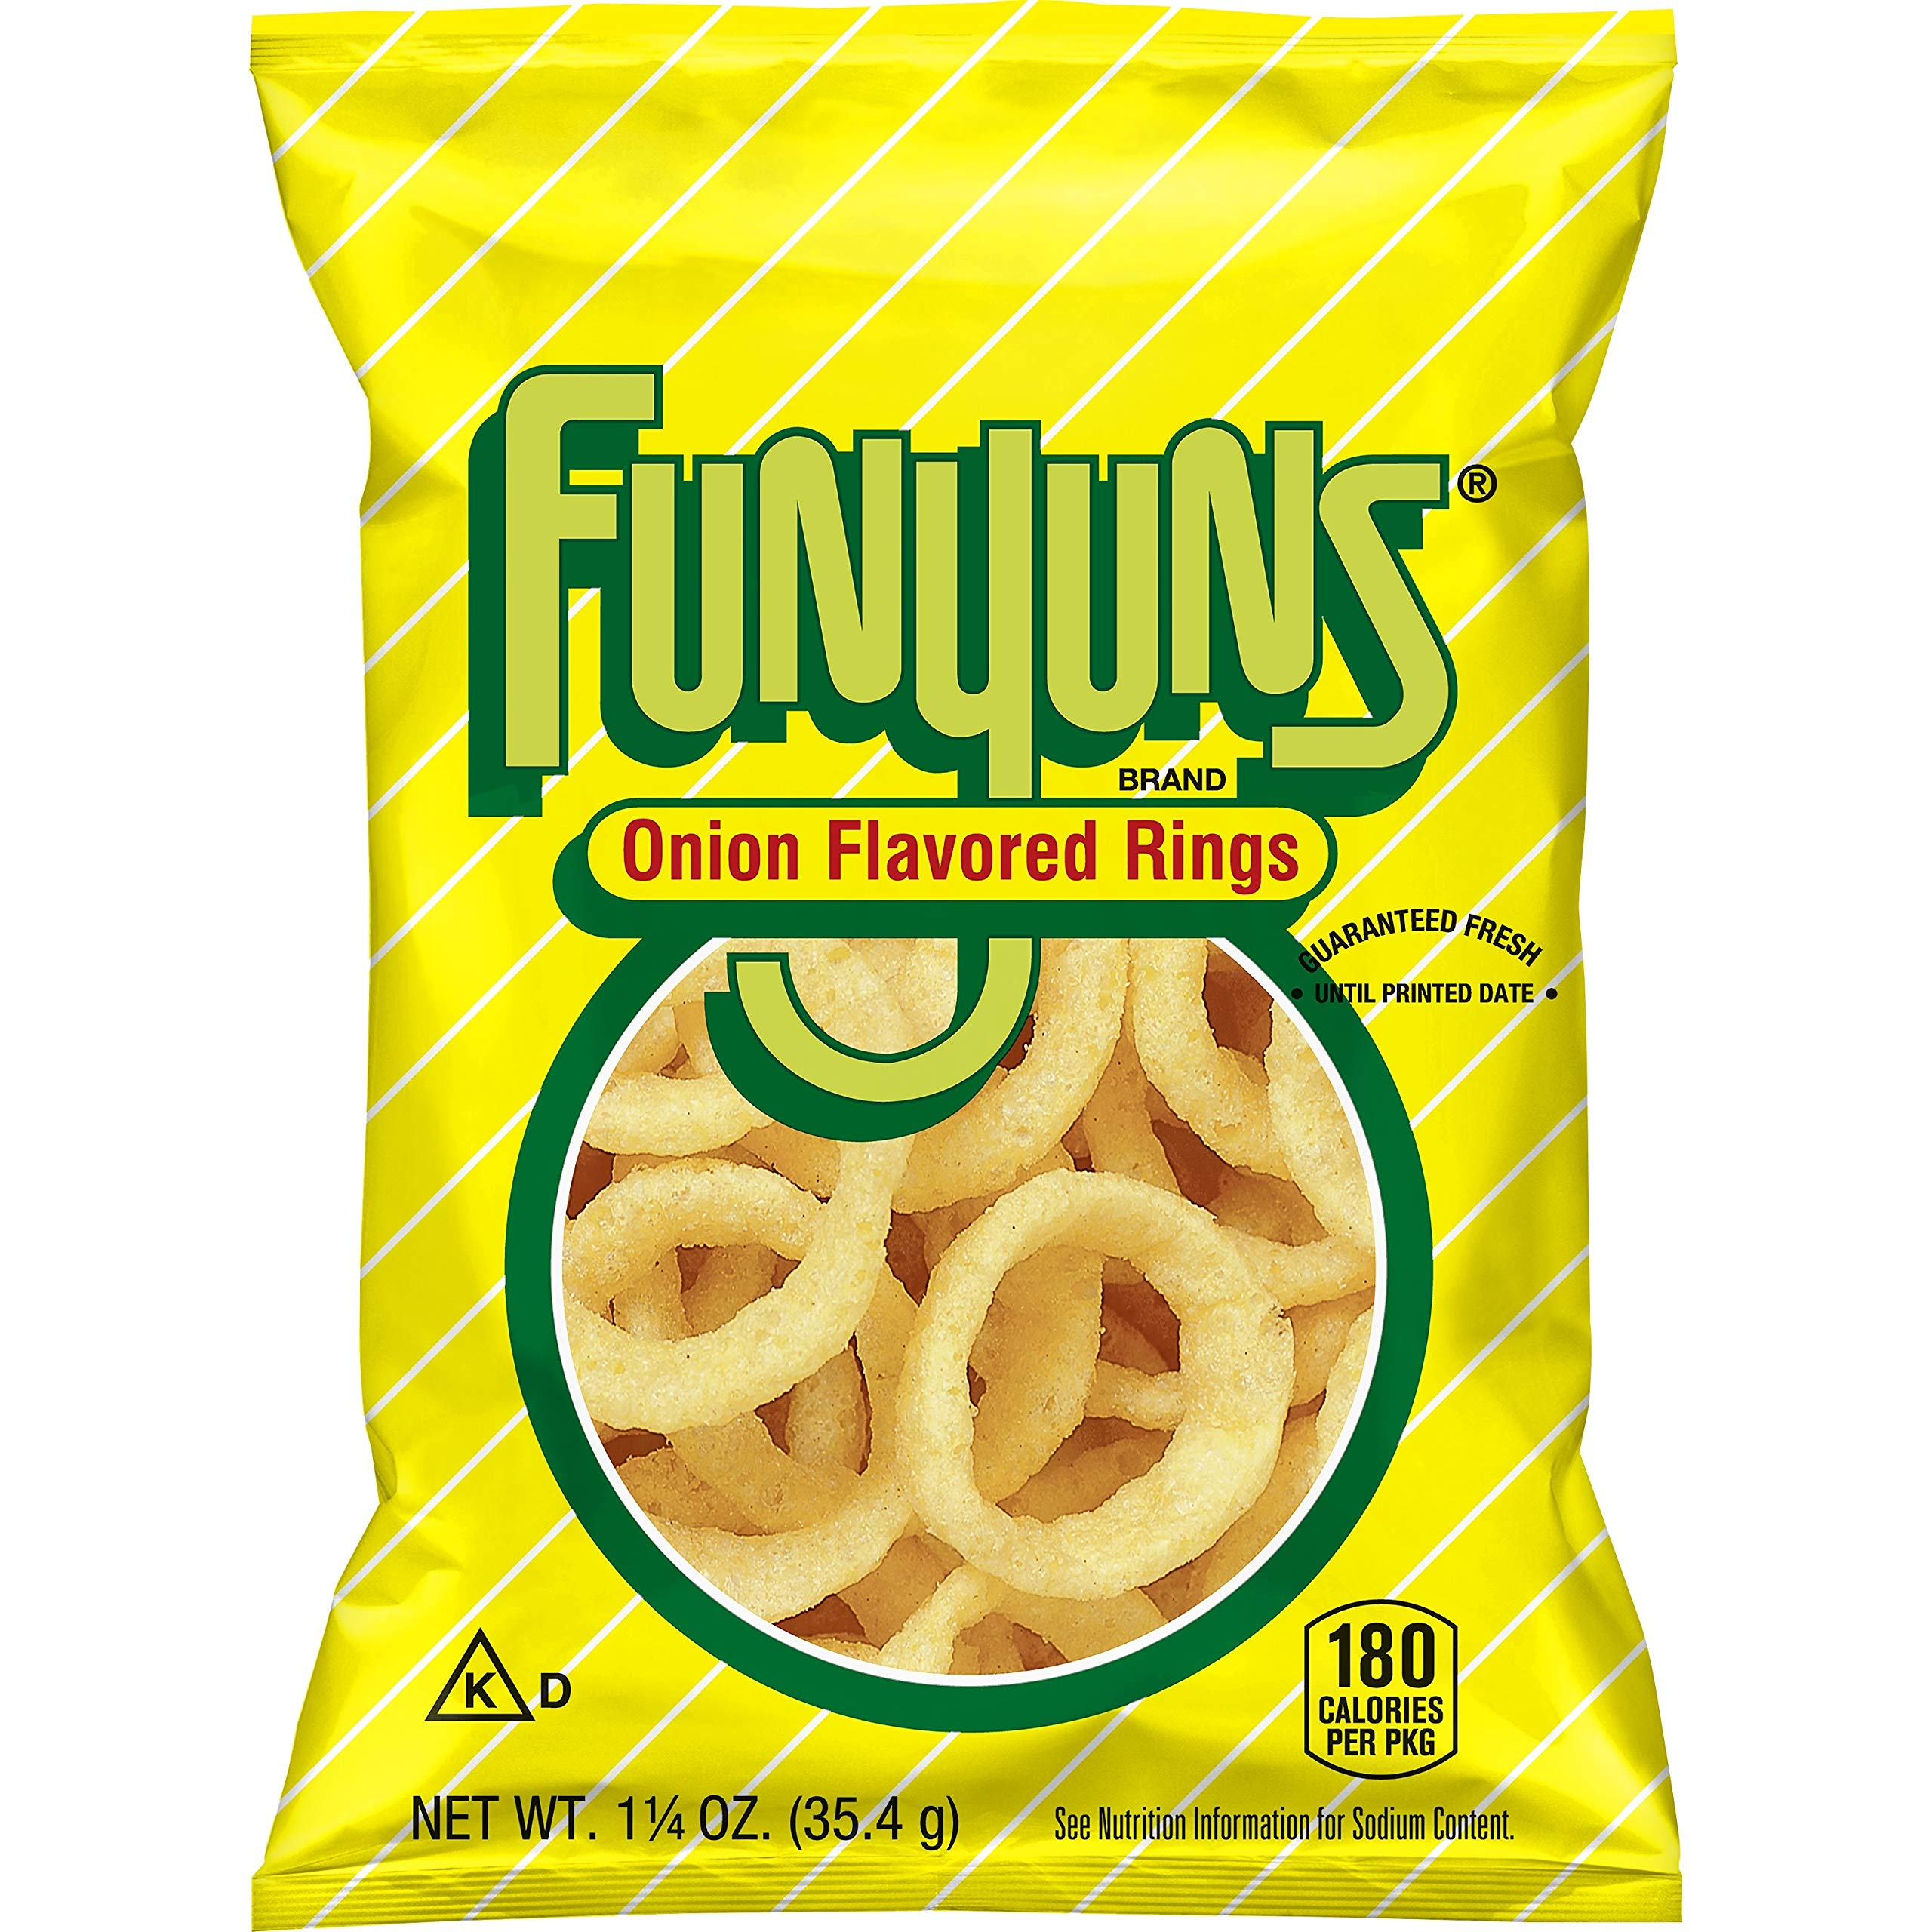 Funyuns Onion Flavored Rings, 1.25 Ounce (Pack of 64)